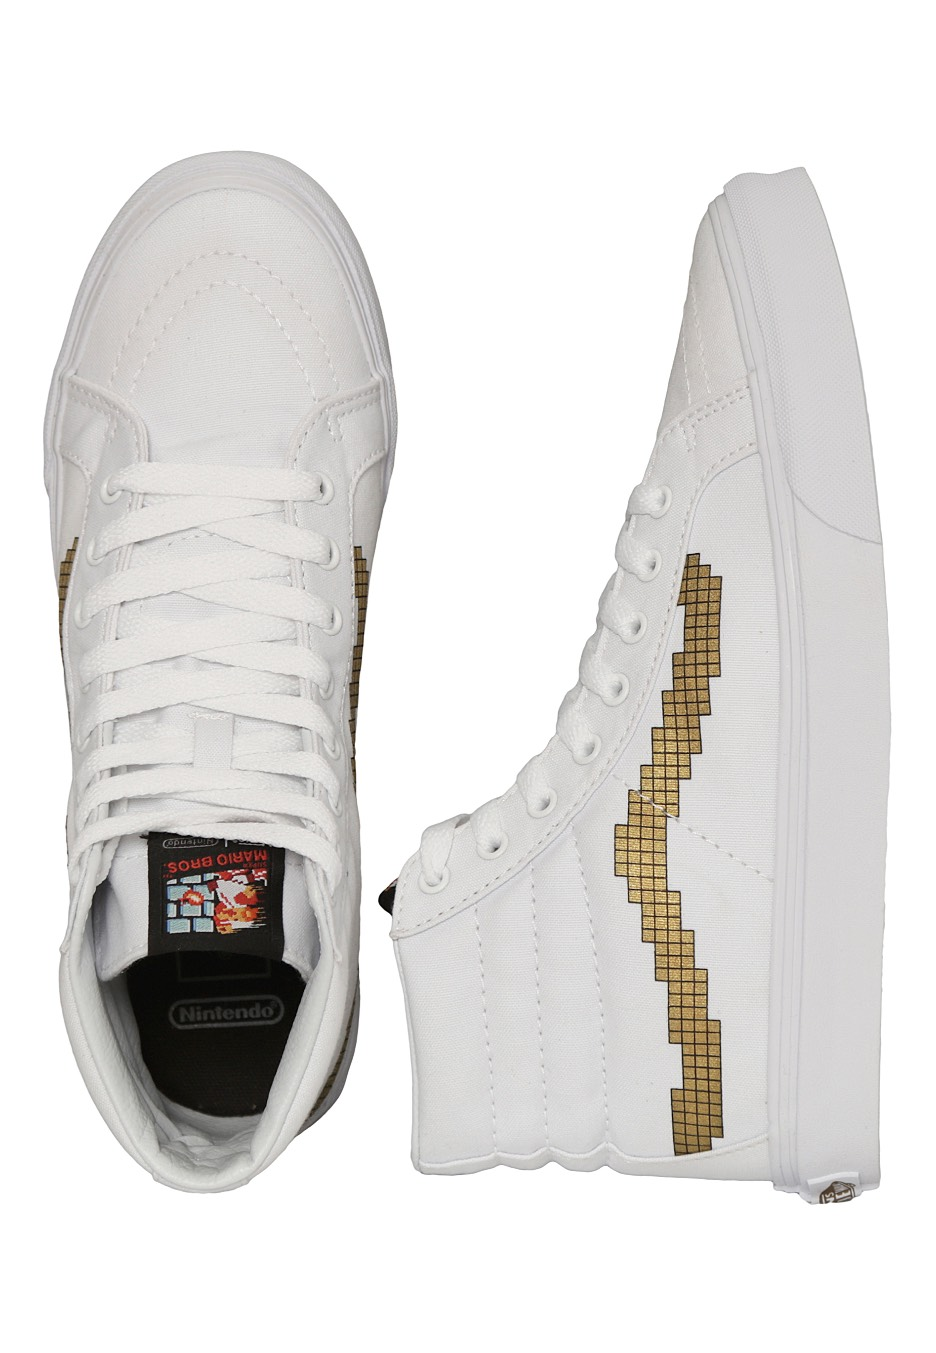 9af4bf576b392b Vans X Nintendo - Sk8-Hi Slim Nintendo Console Gold - Girl Shoes -  Impericon.com Worldwide